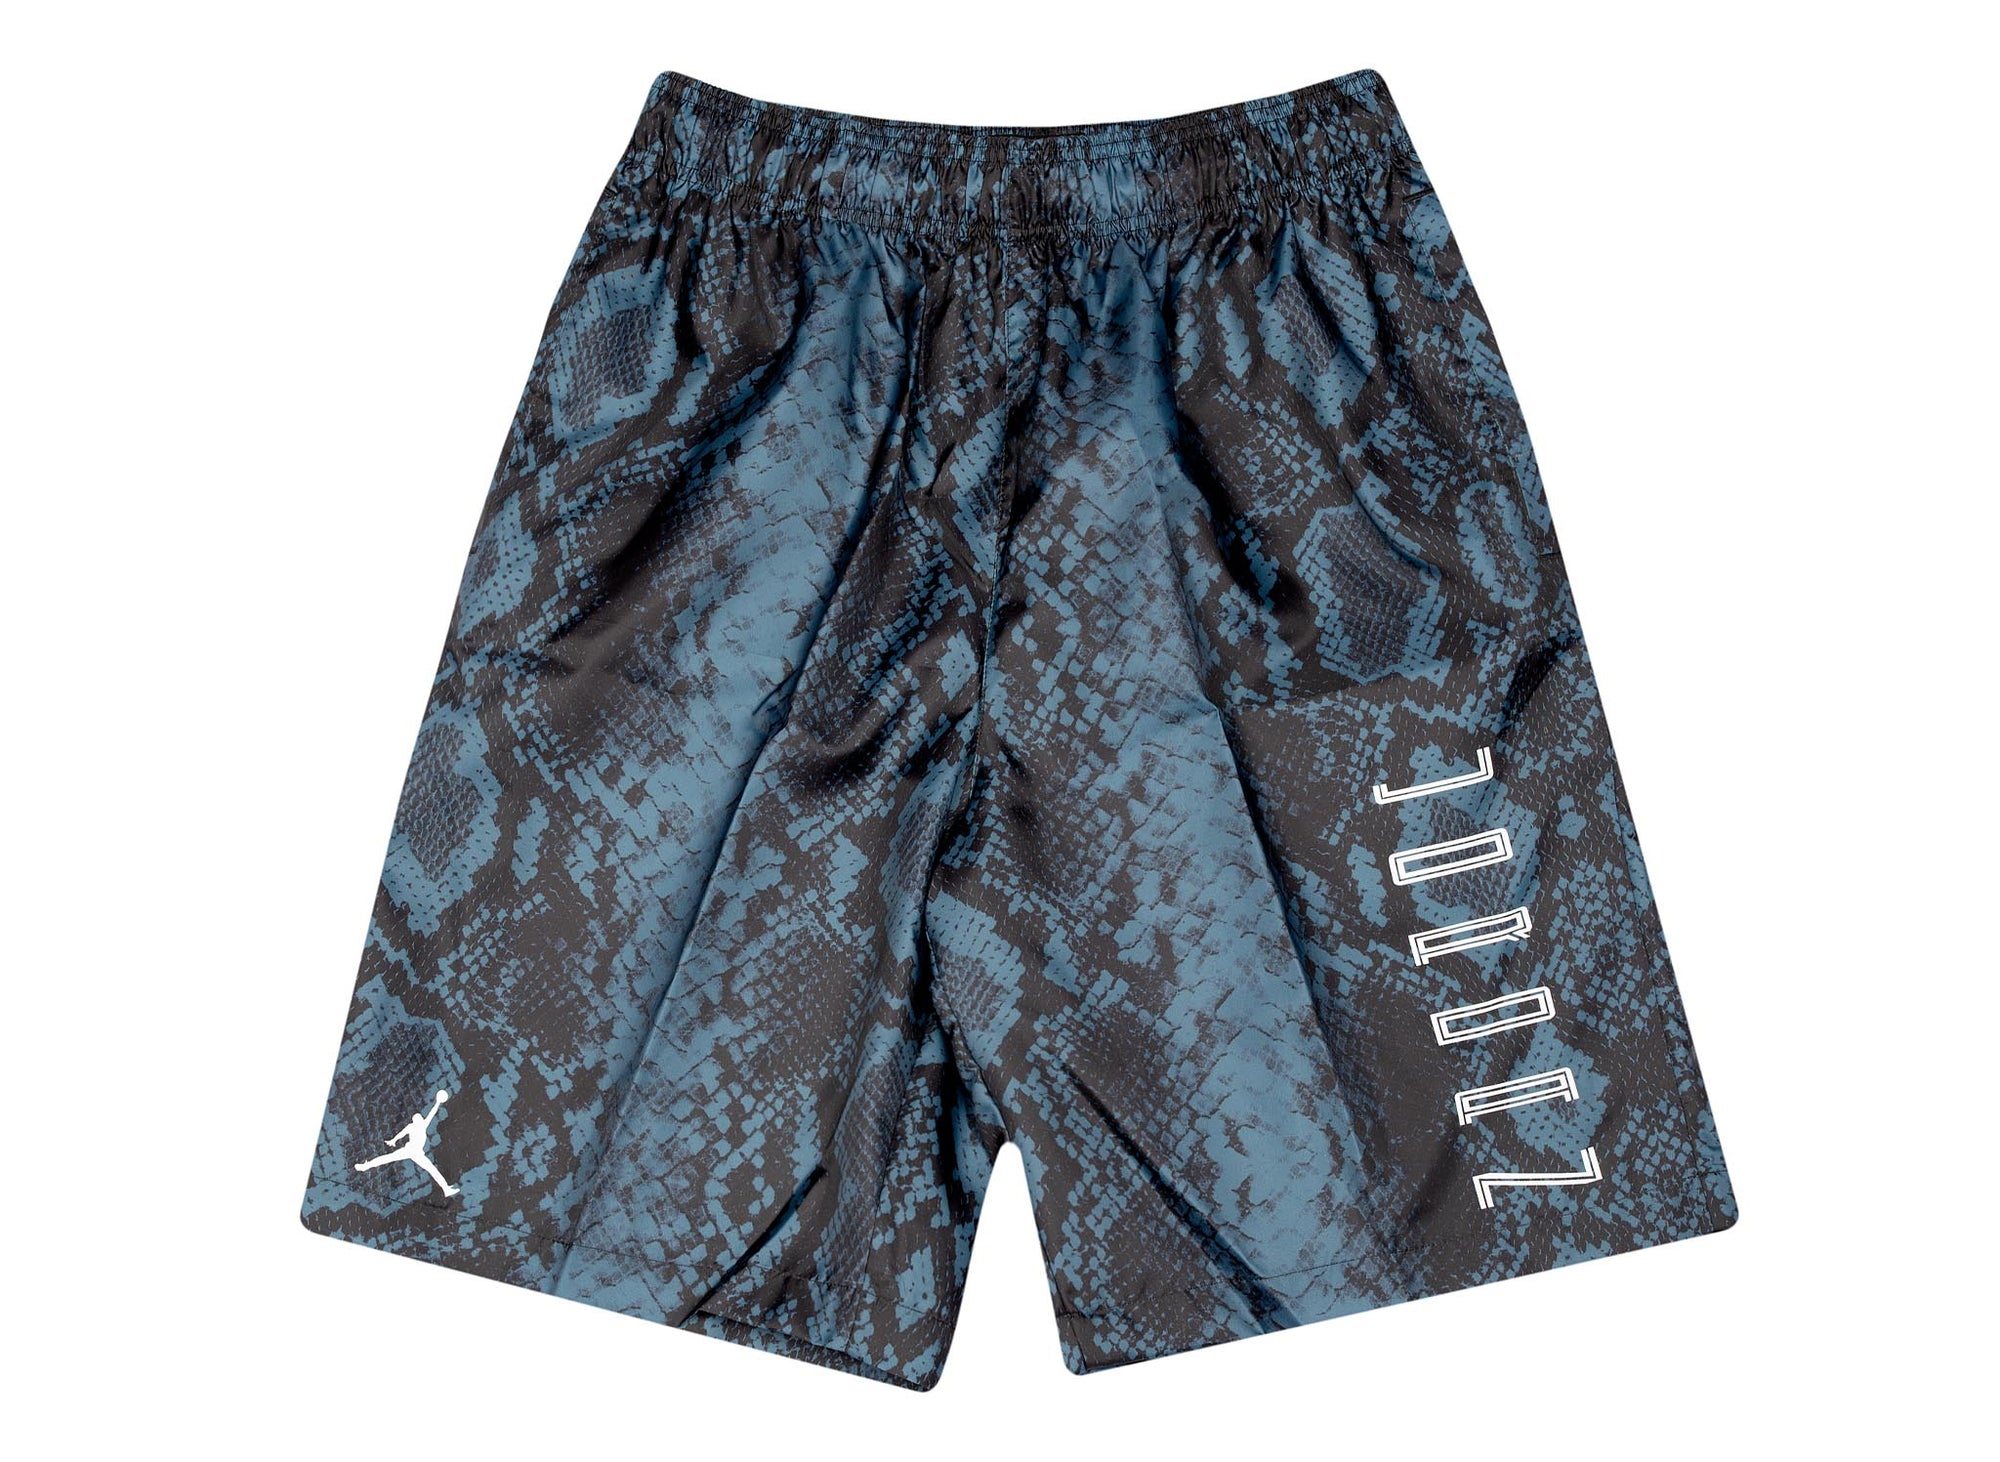 Air Jordan 11 Snakeskin Short 'Blue'